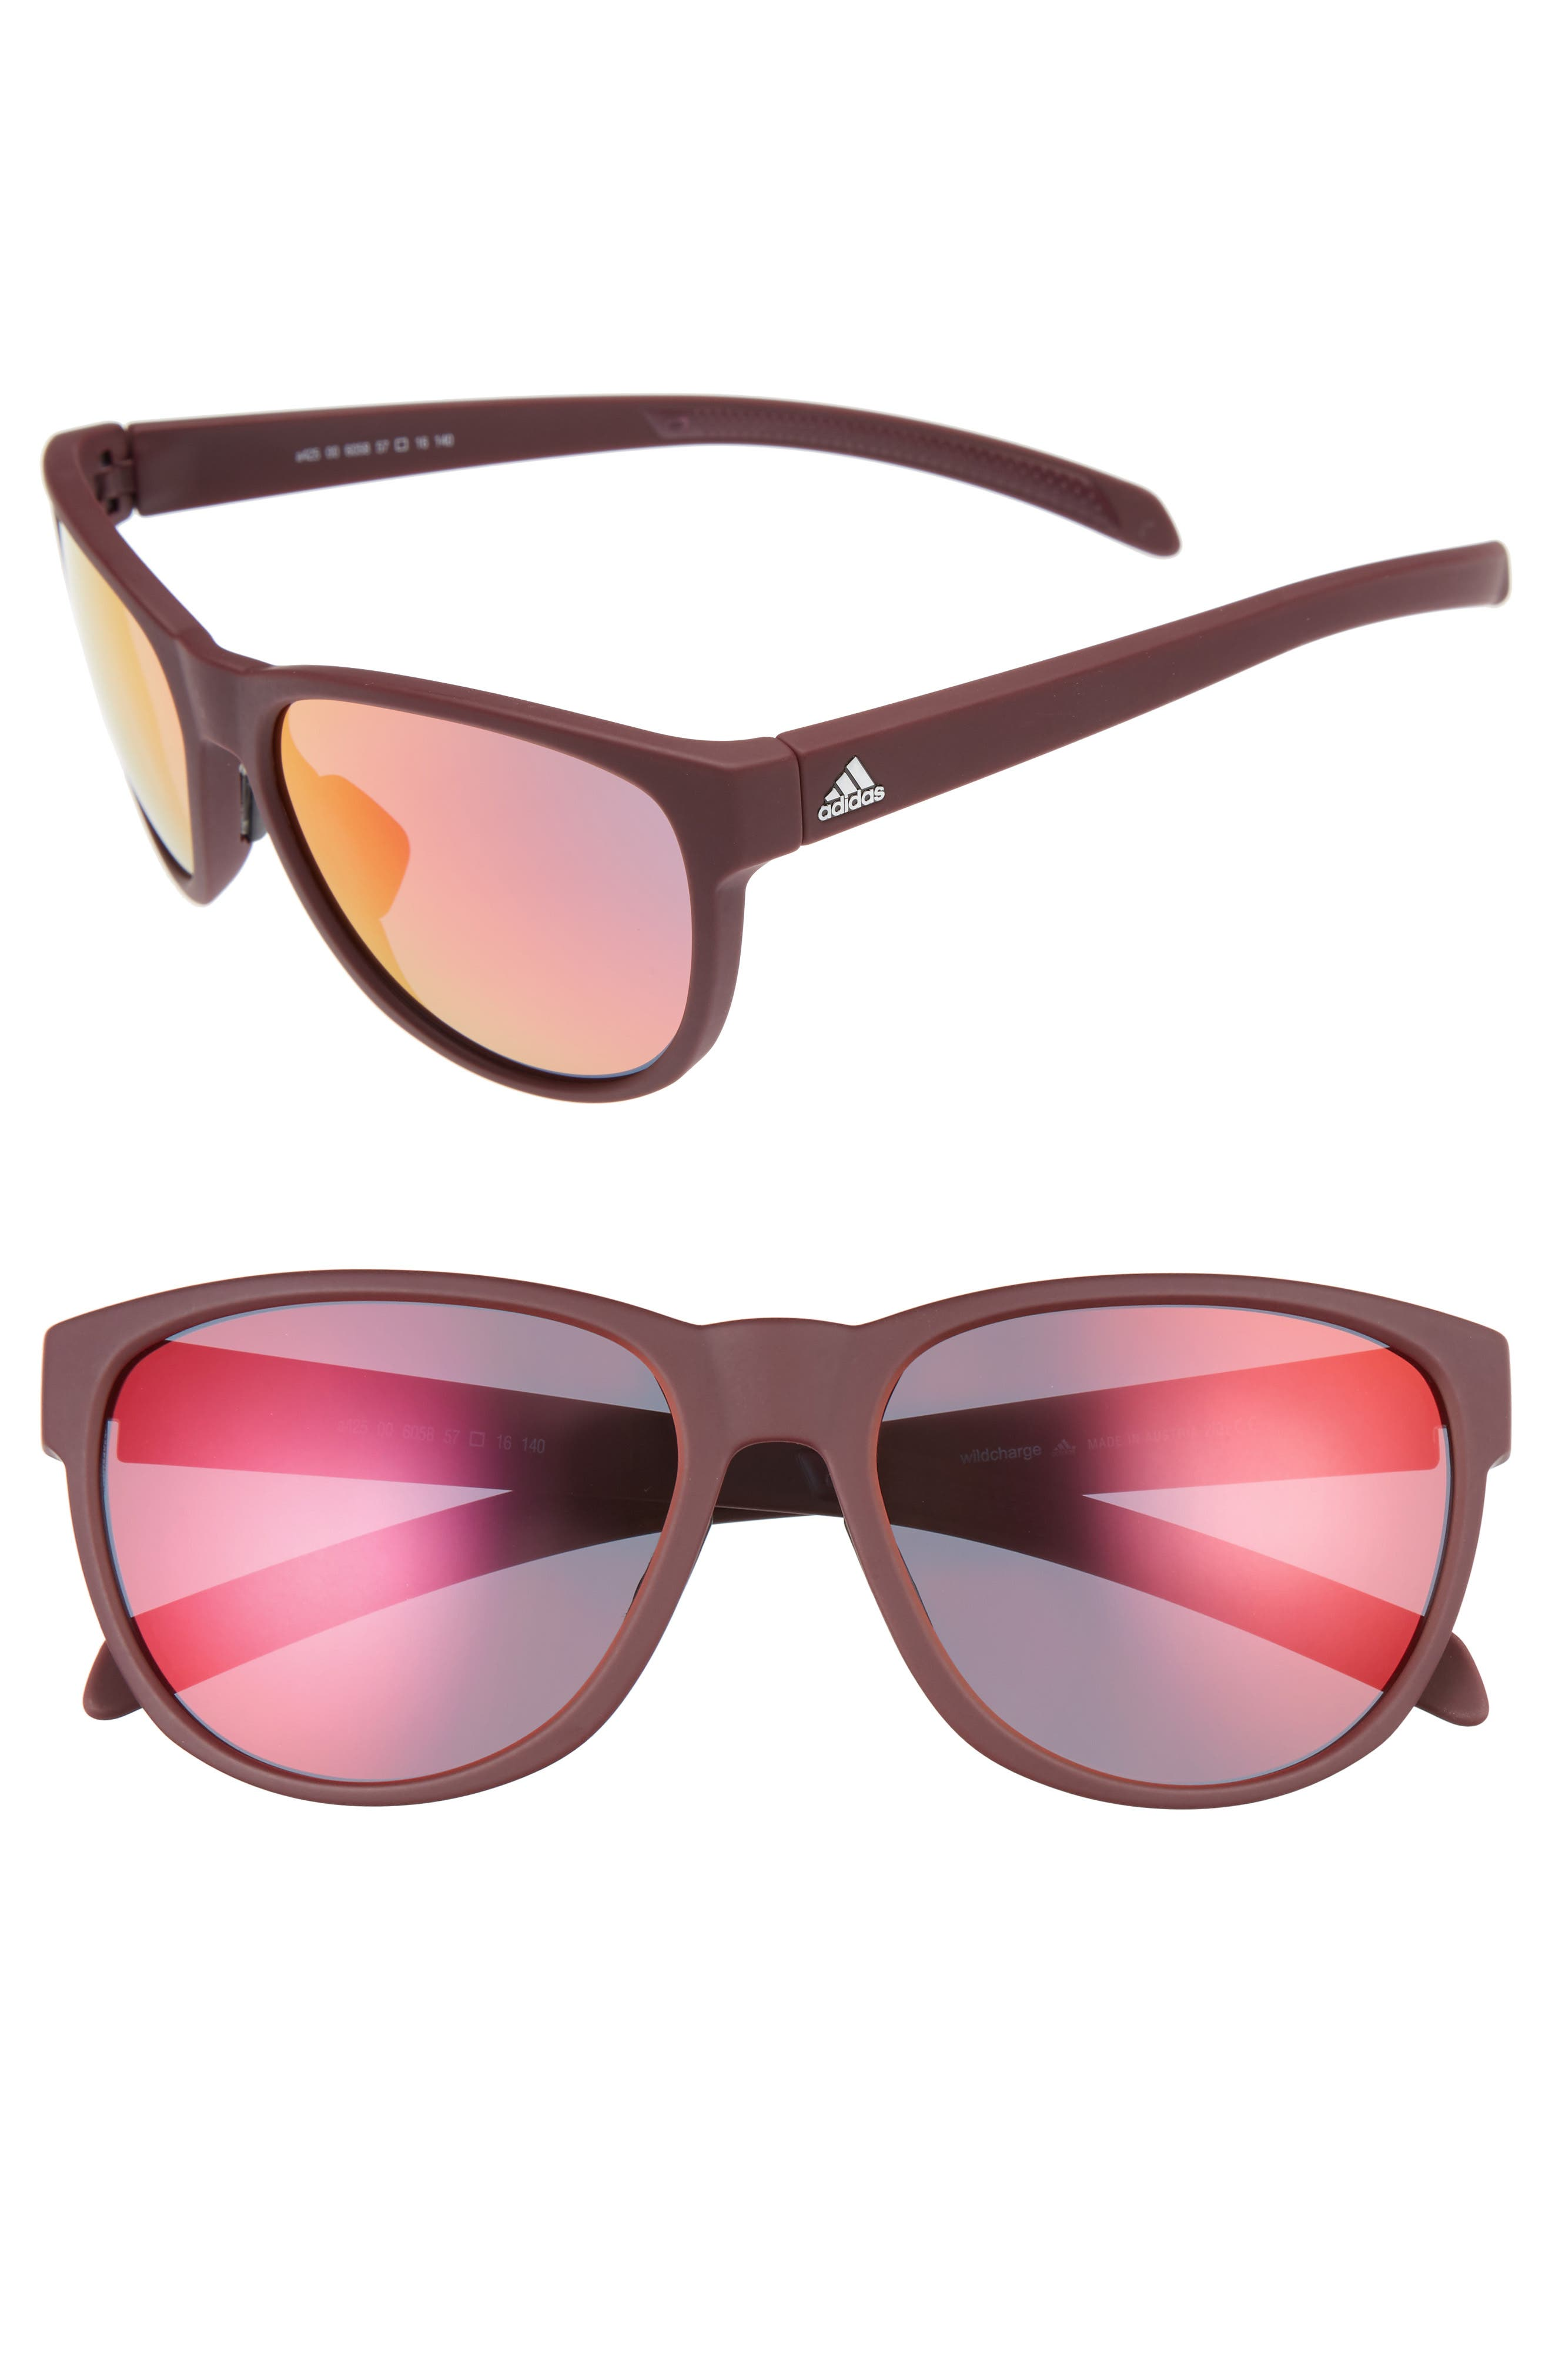 Wildcharge 61mm Mirrored Sunglasses,                             Main thumbnail 2, color,